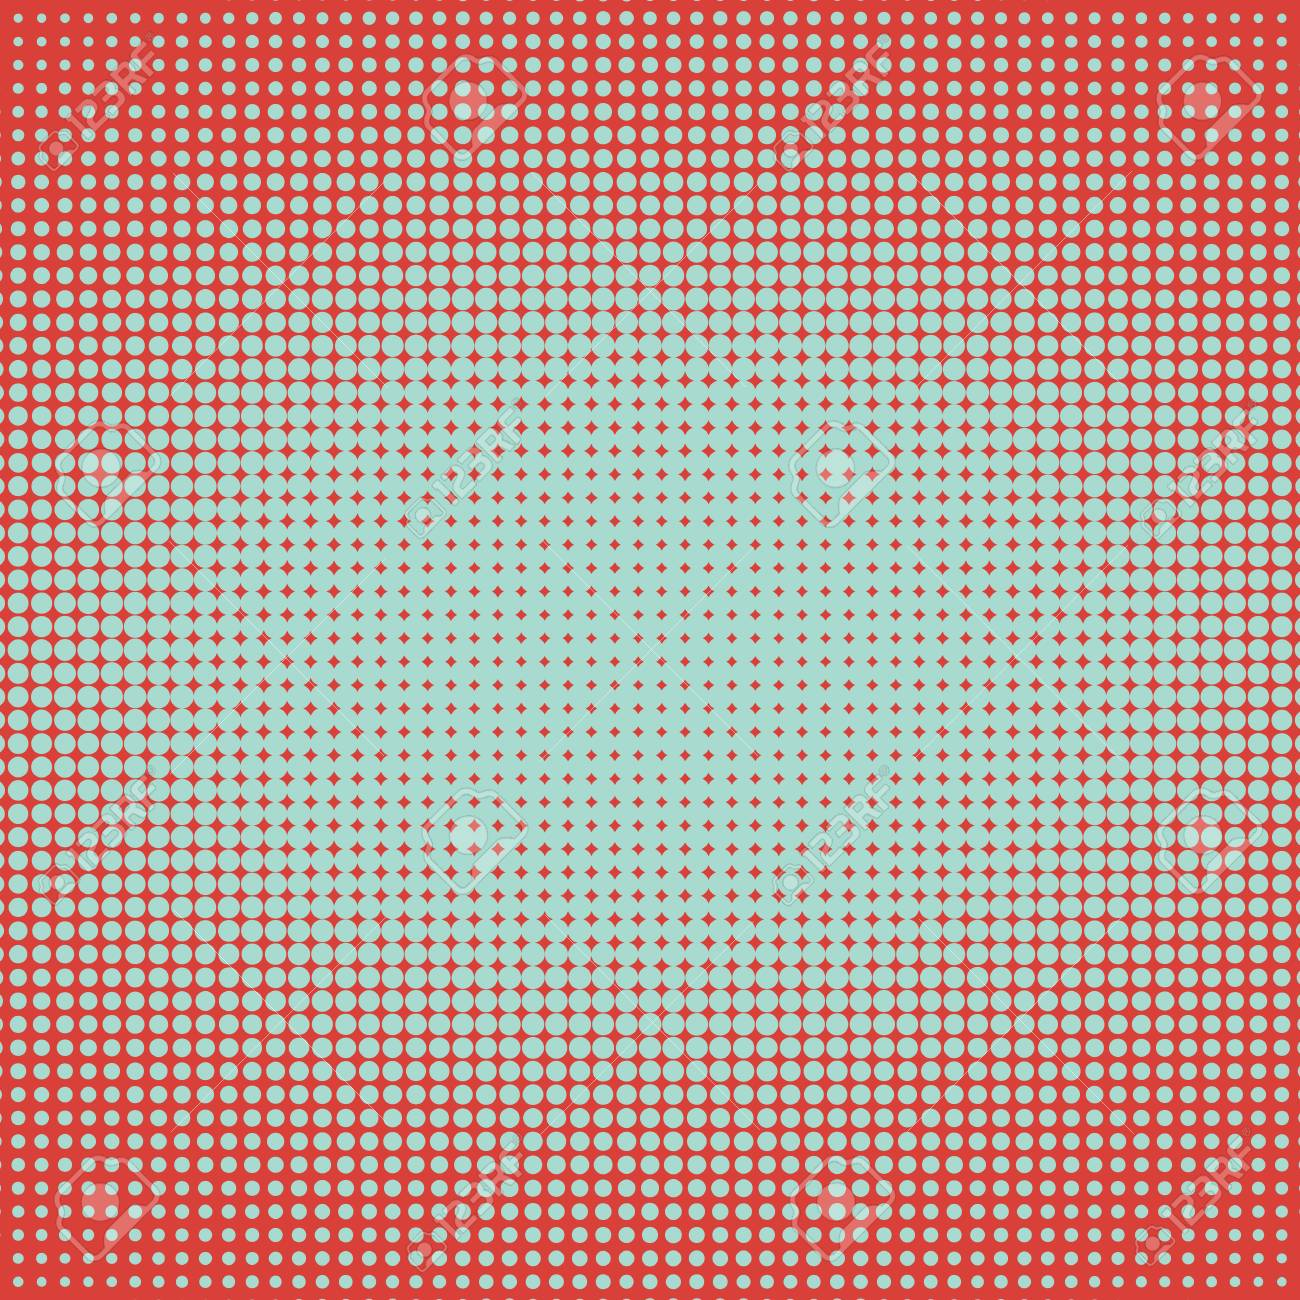 Old comic bright colored background with halftone gradient in pop art retro style. Vector illustration. - 97995983